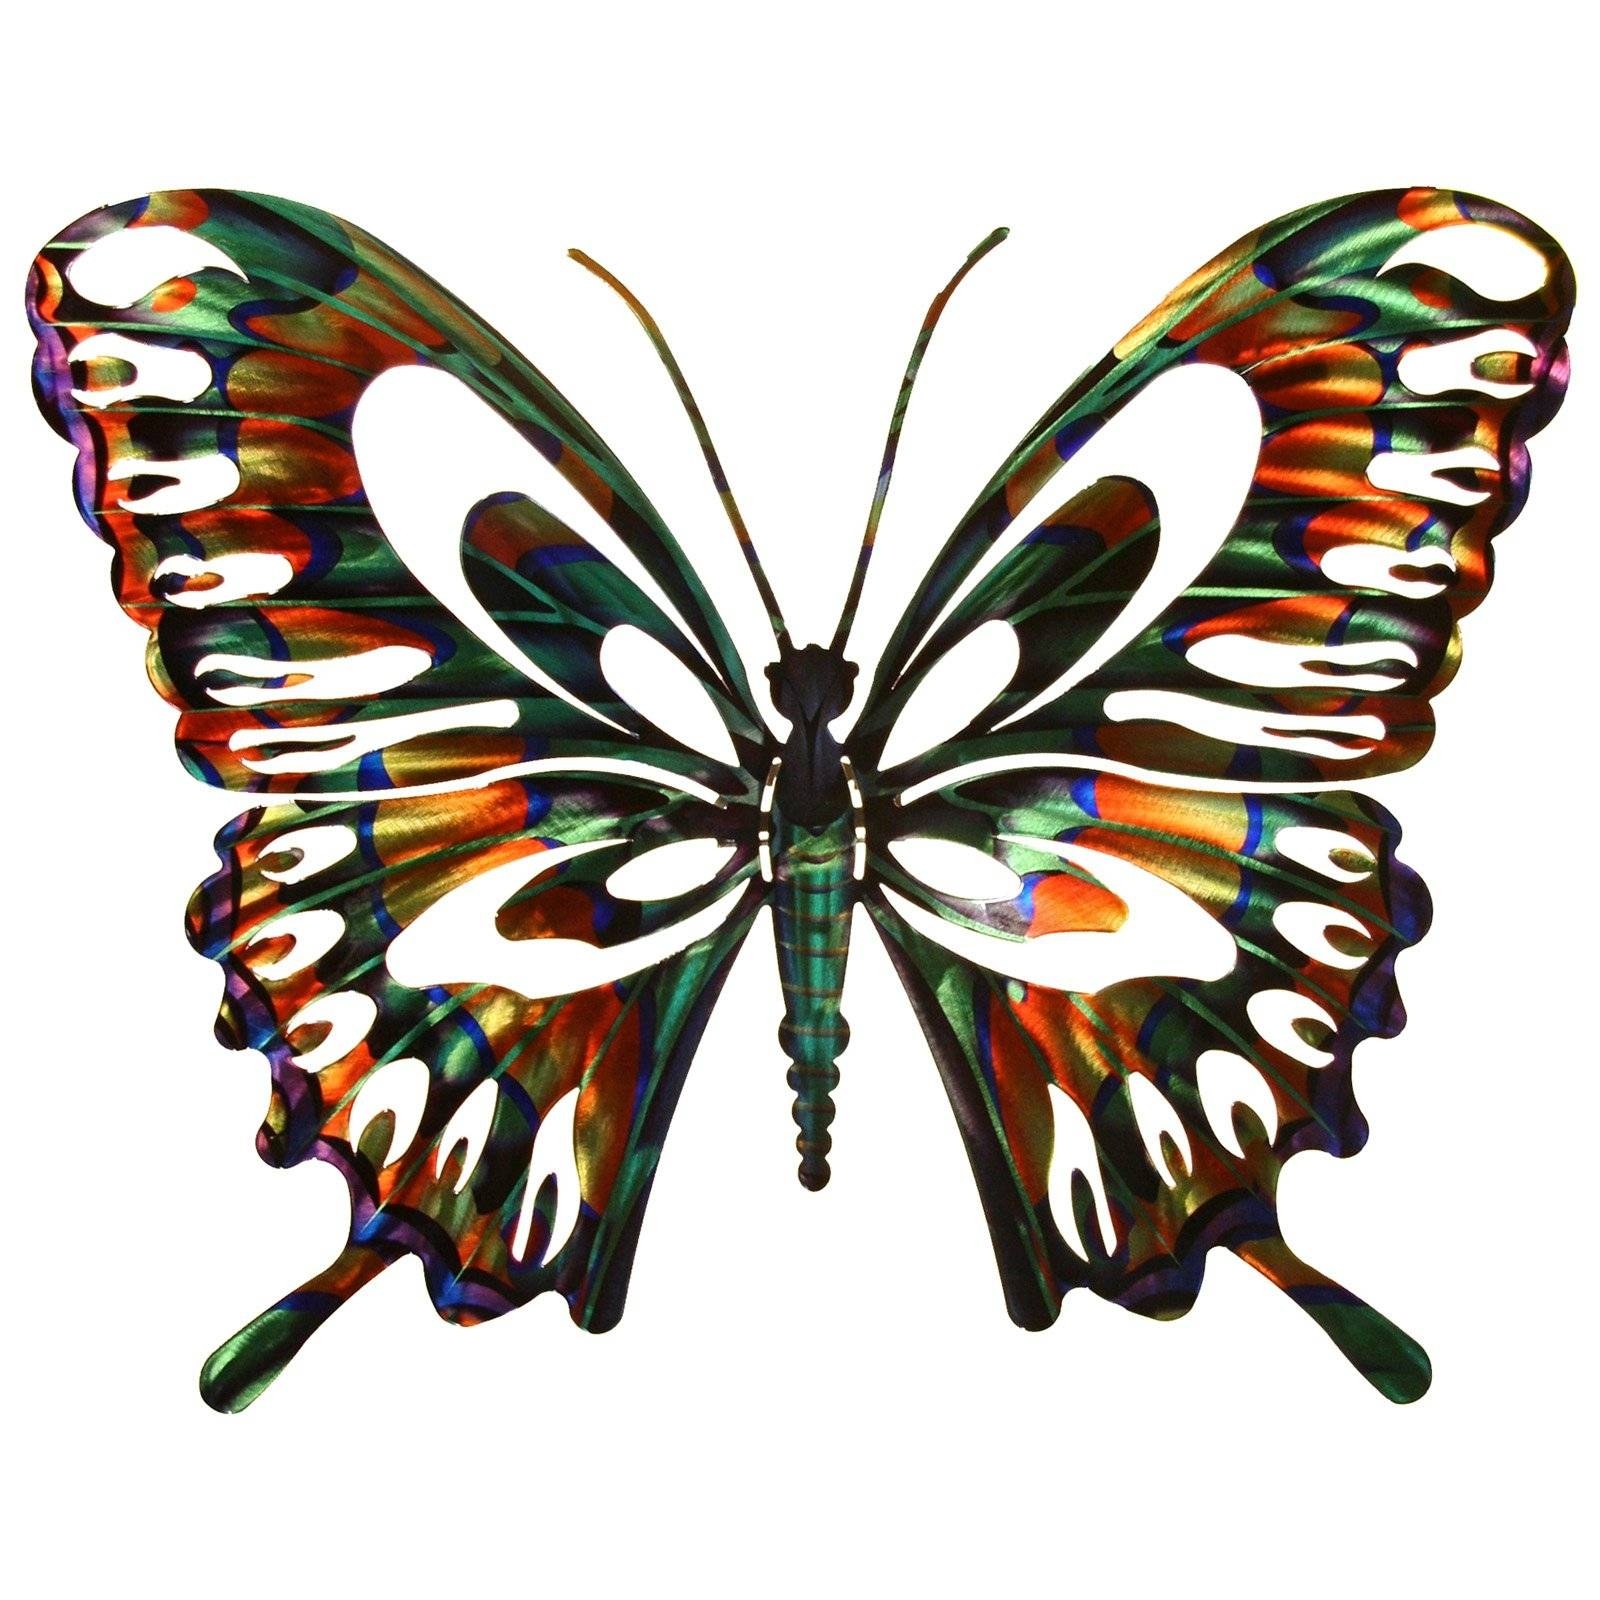 3D Butterfly Metal Outdoor Wall Art | Hayneedle With Recent 3D Garden Wall Art (View 2 of 20)